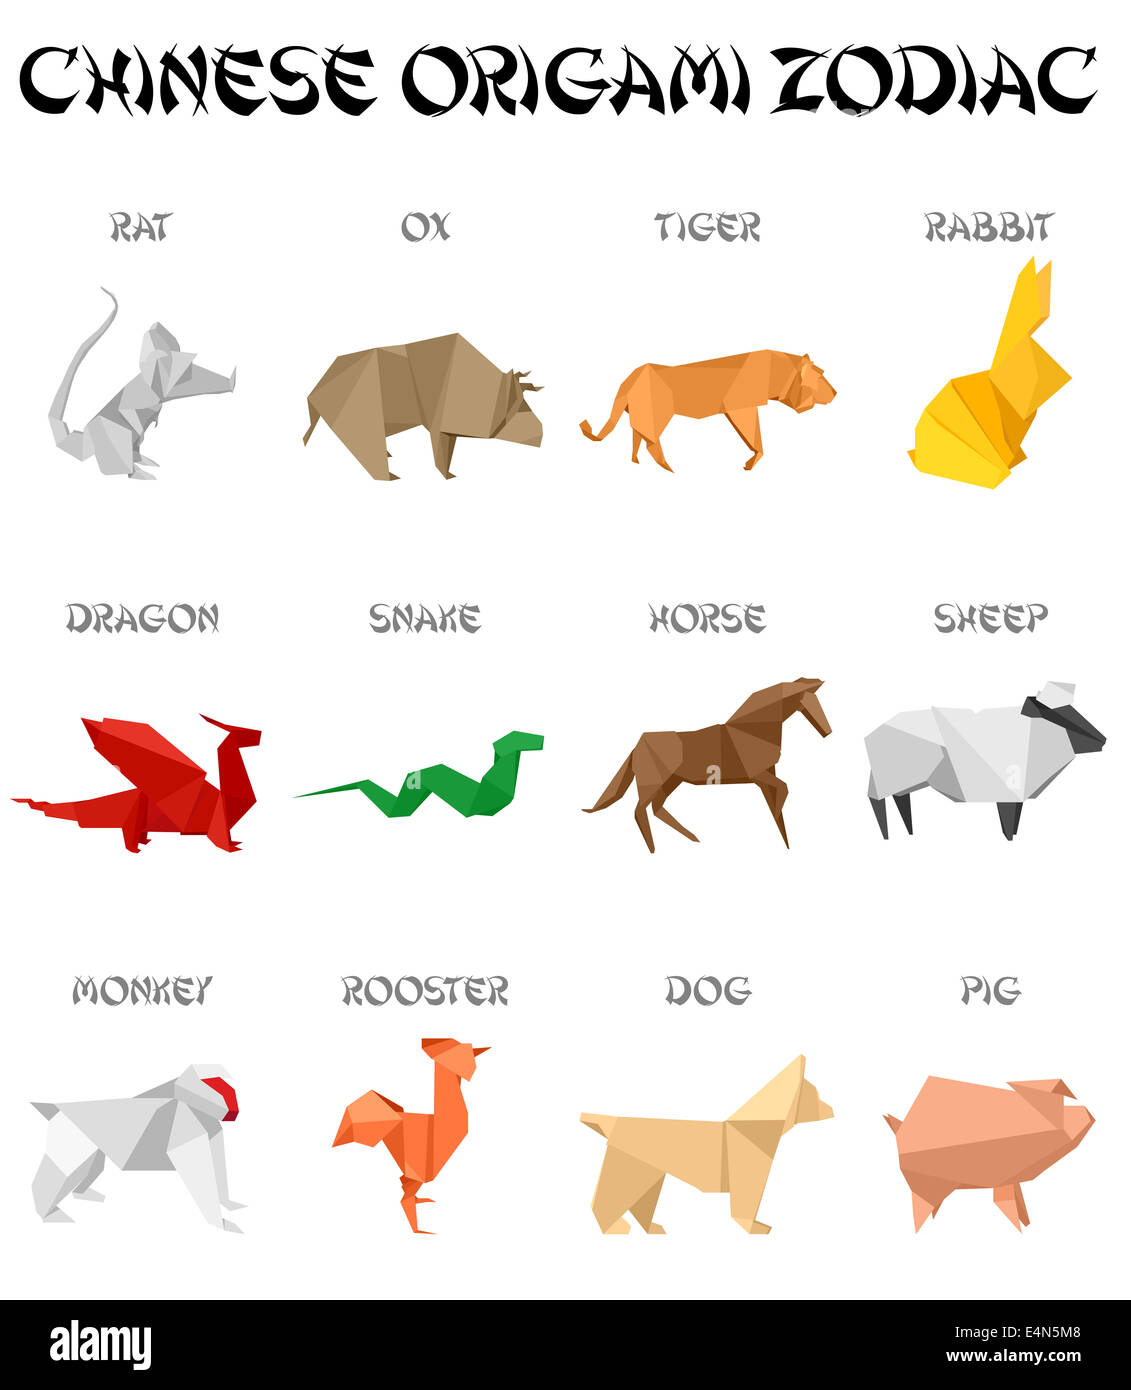 Chinese Horoscope Signs High Resolution Stock Photography And Images Alamy